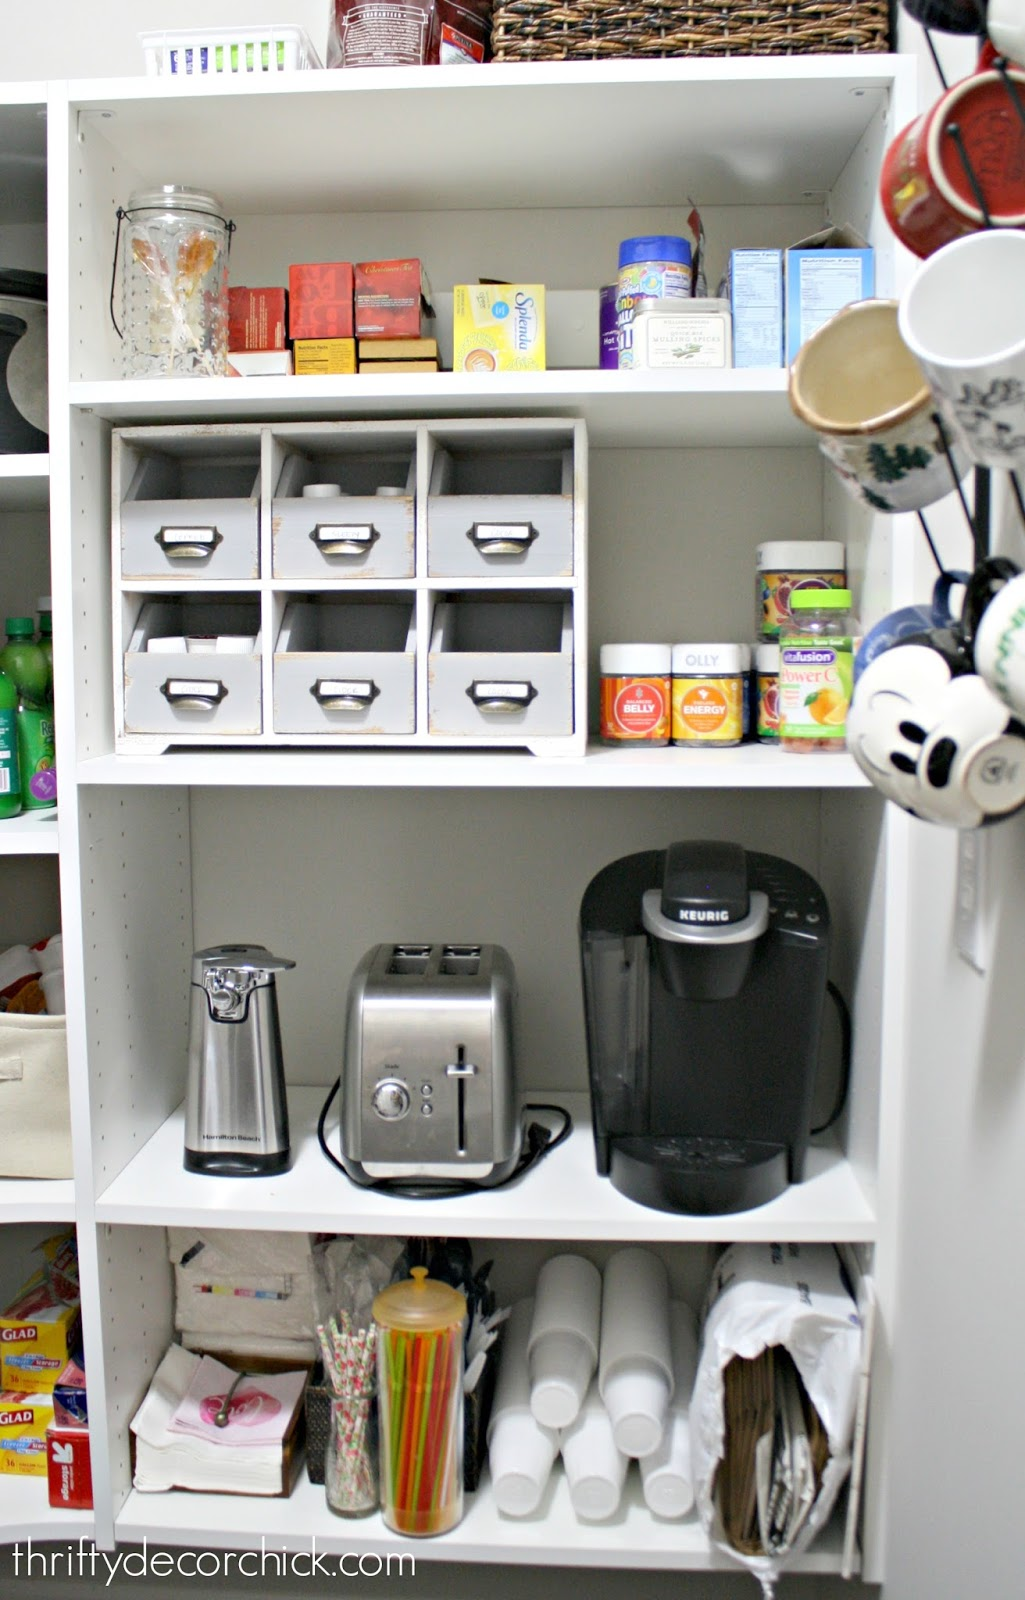 Storing appliances in pantry